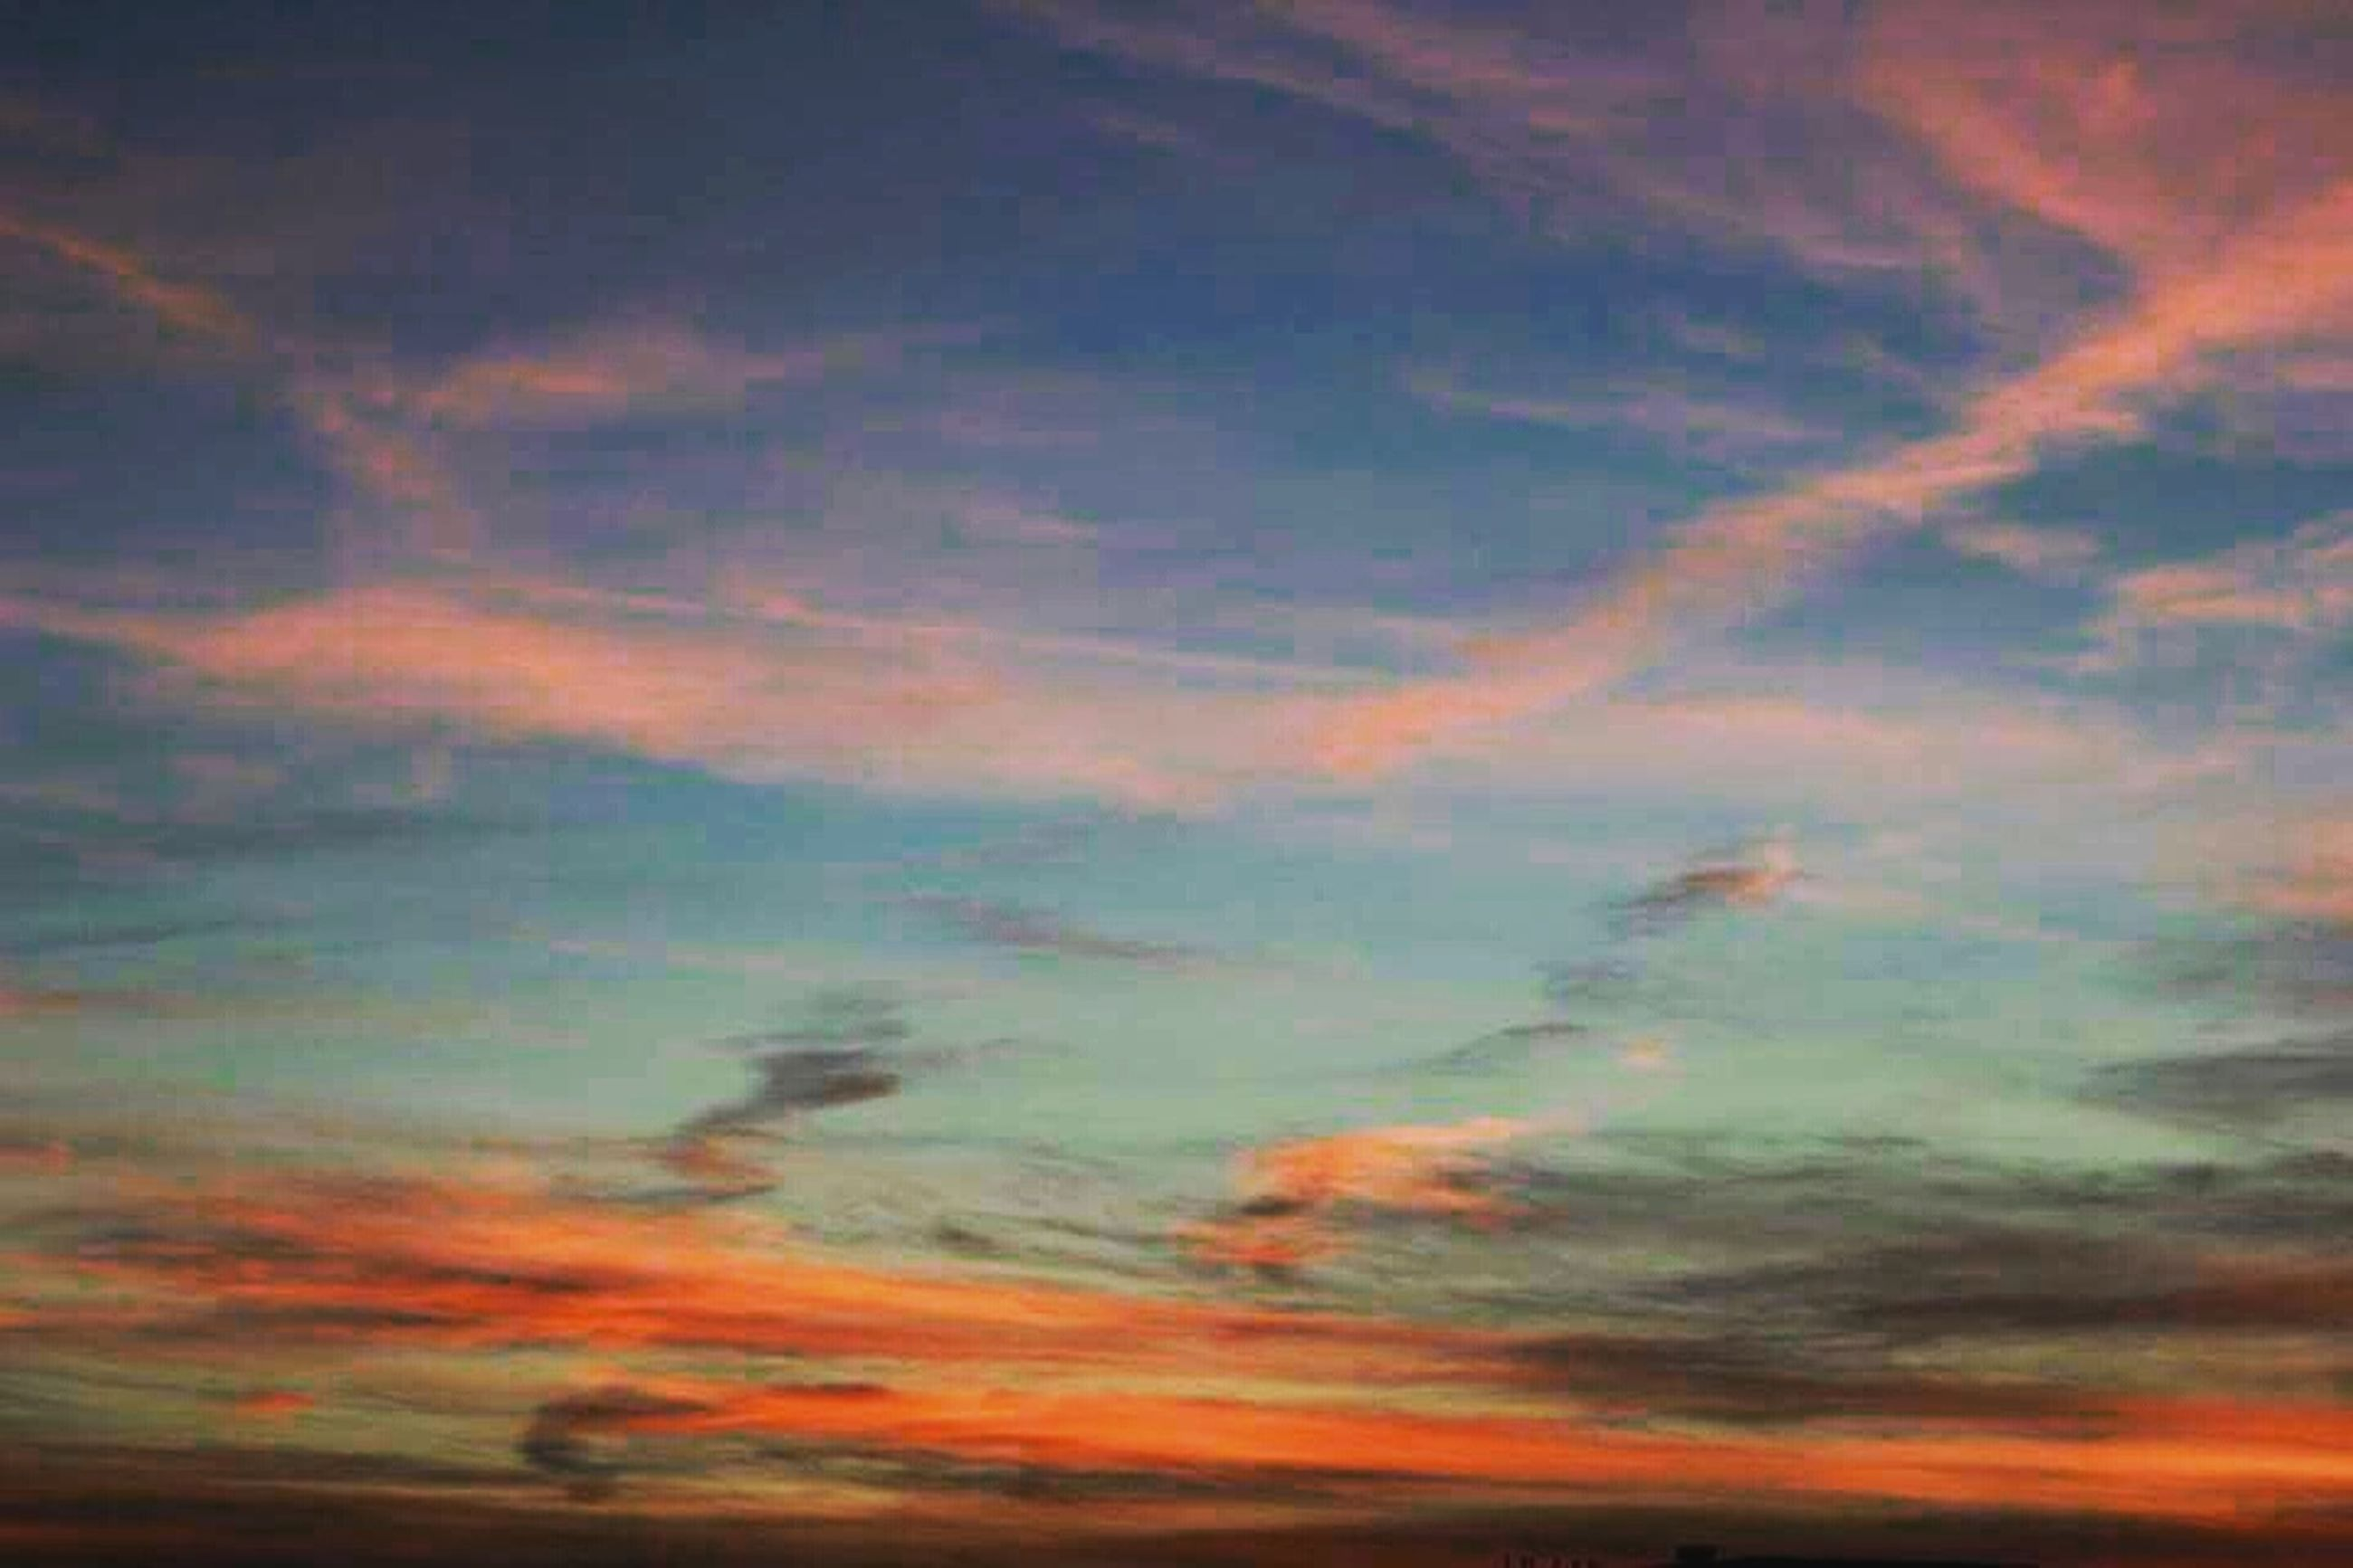 sunset, sky, cloud - sky, orange color, beauty in nature, scenics, tranquility, low angle view, tranquil scene, cloudy, dramatic sky, nature, sky only, idyllic, cloudscape, backgrounds, cloud, majestic, weather, full frame